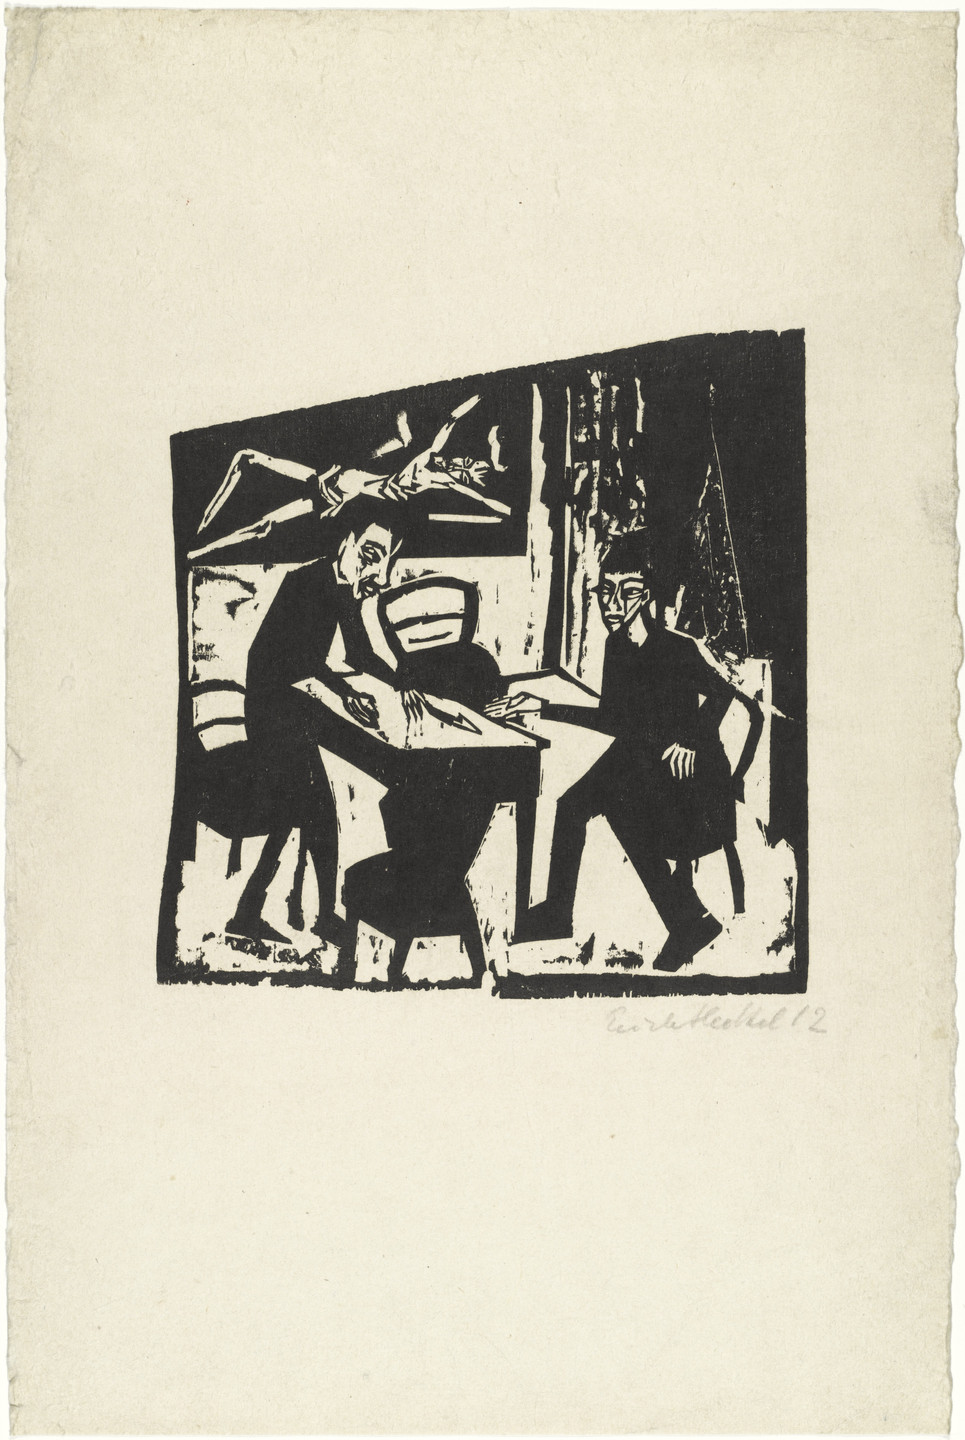 Erich Heckel. Adversaries (Gegner). 1912